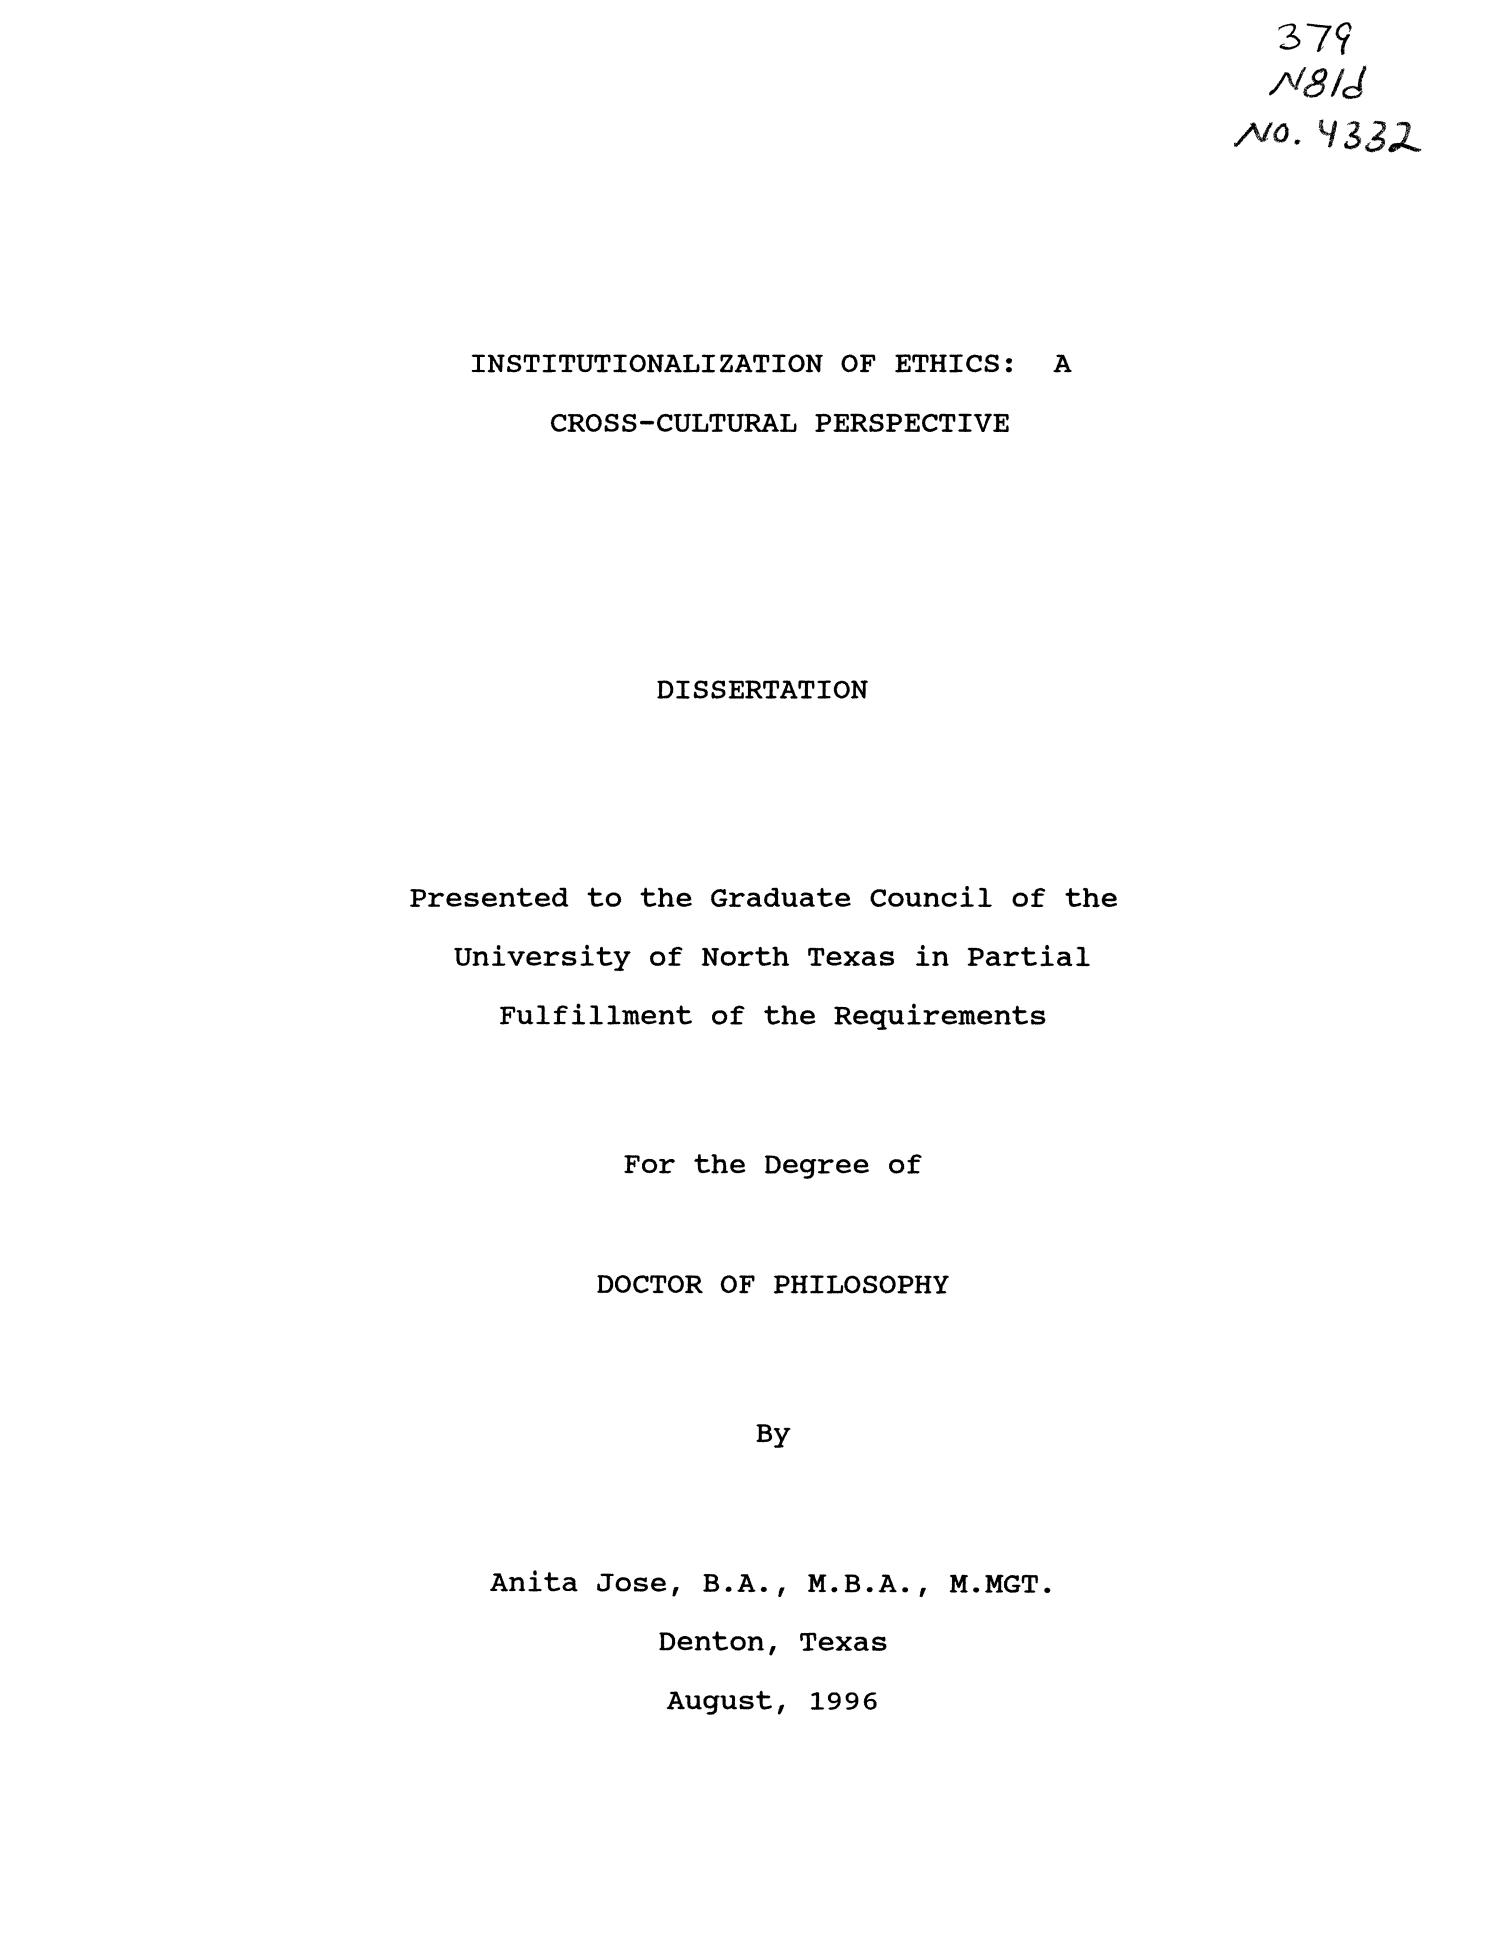 Institutionalization of Ethics: a Cross-Cultural Perspective                                                                                                      Title Page